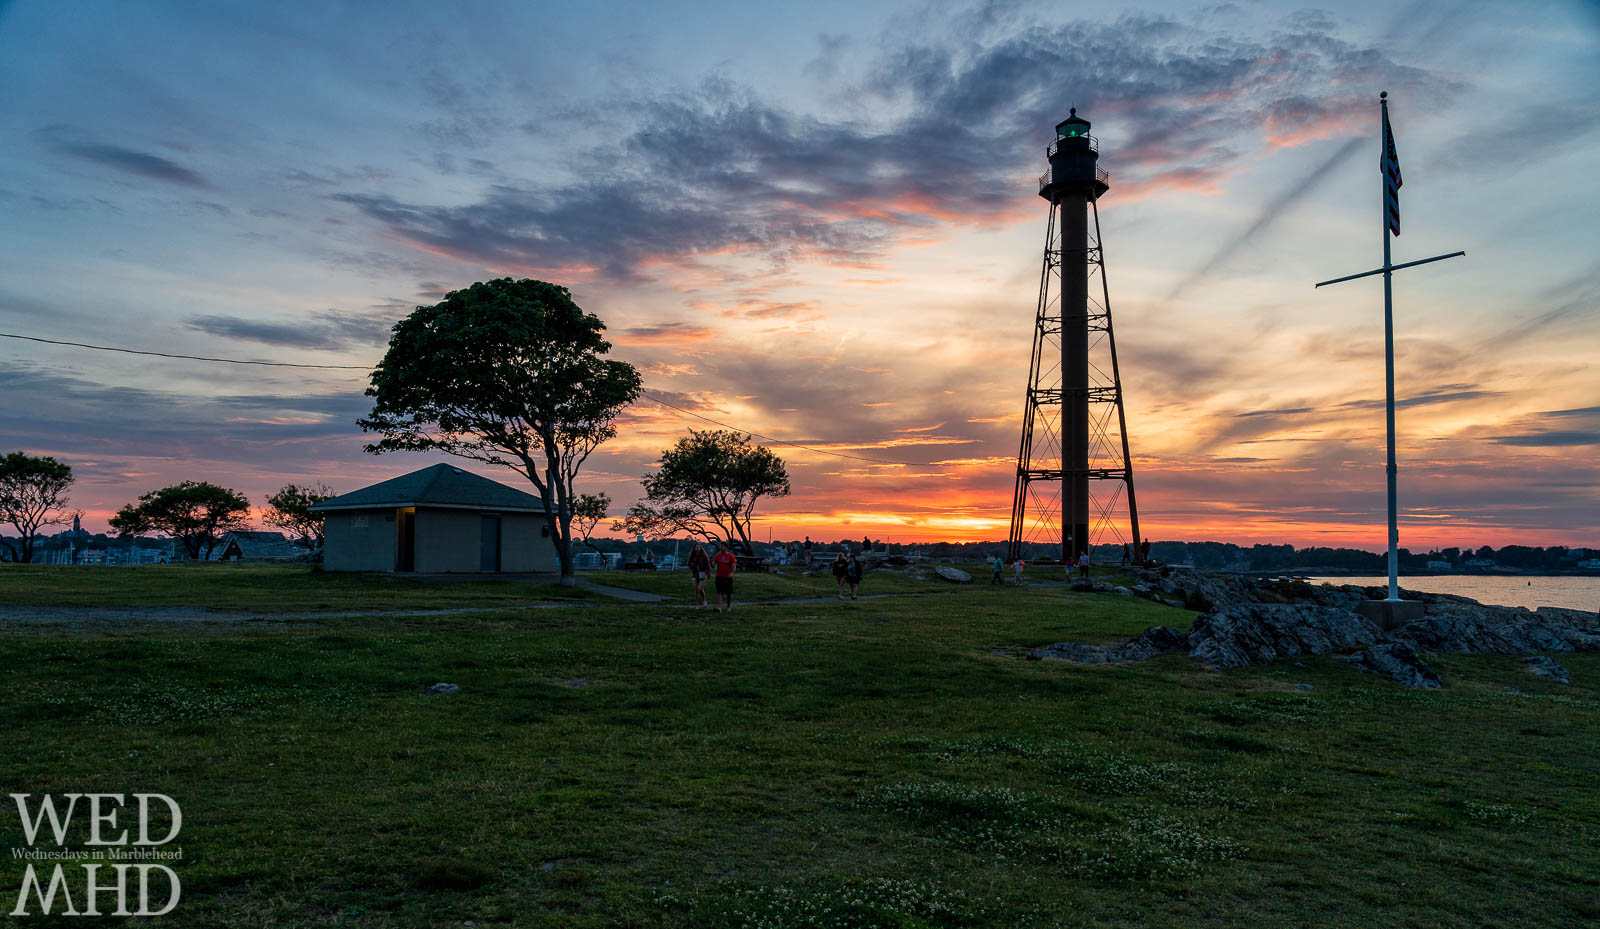 No better way to end a weekend in Marblehead than enjoying sunday sunsets at the lighthouse